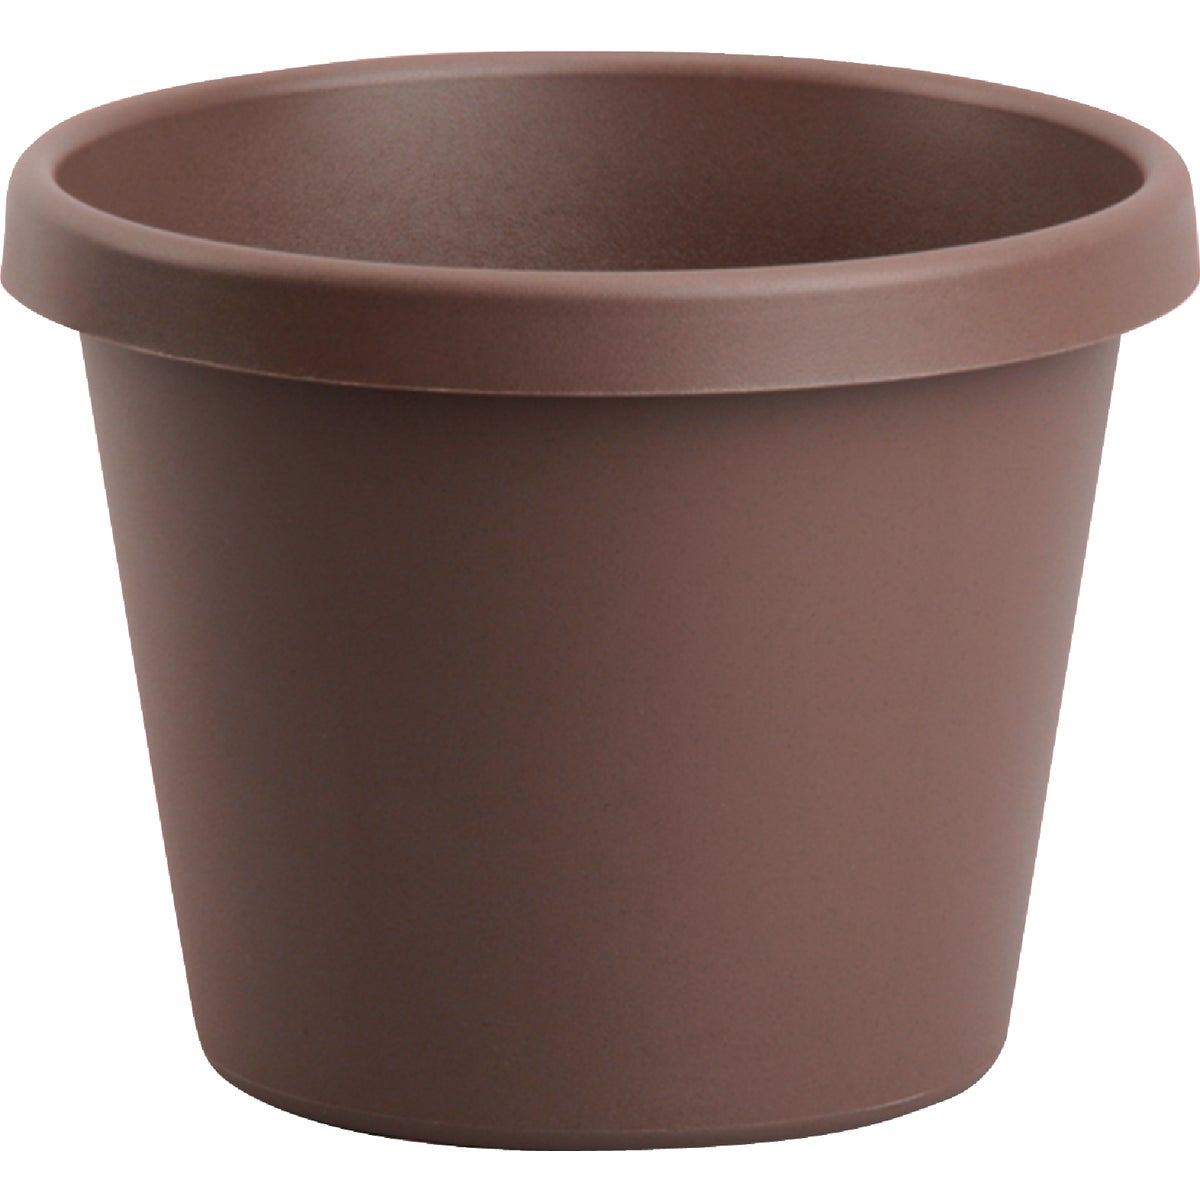 "16"" CHOCOLATE POLY POT - 50316CH by Fiskars Brands Inc"